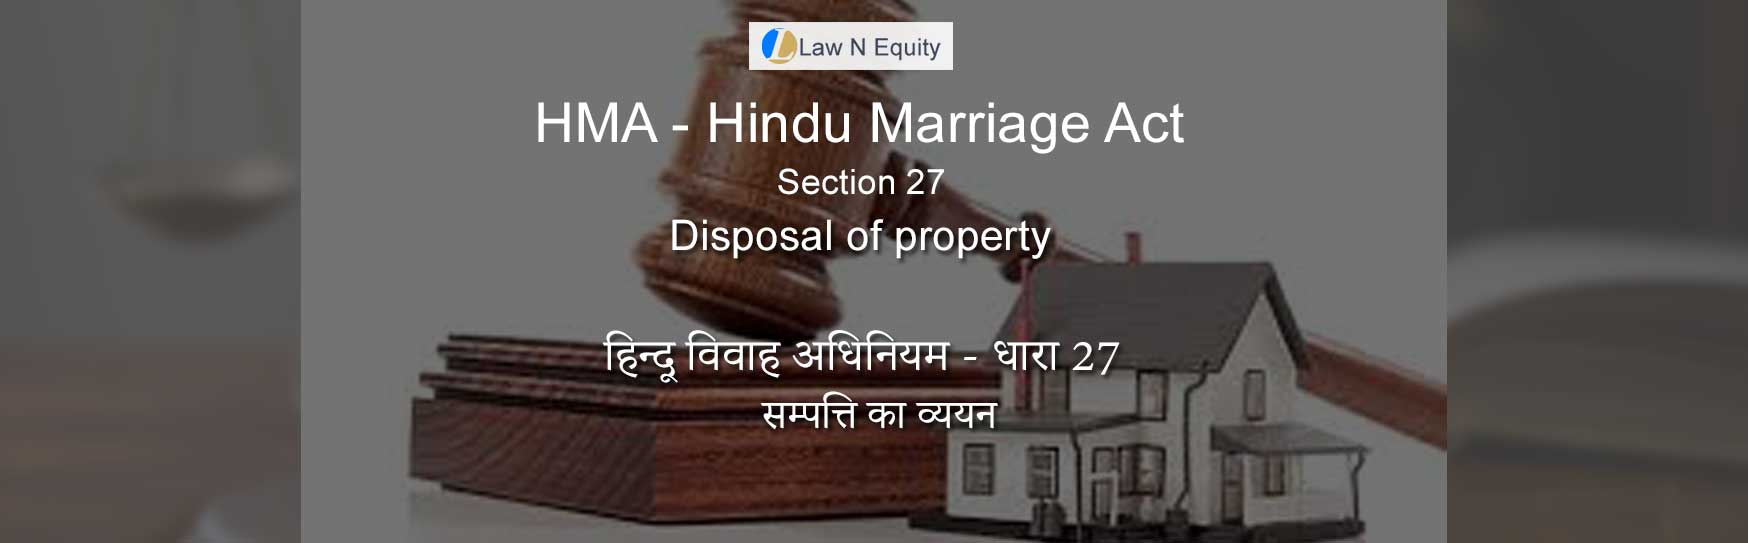 Hindu Marriage Act(HMA) Section 27